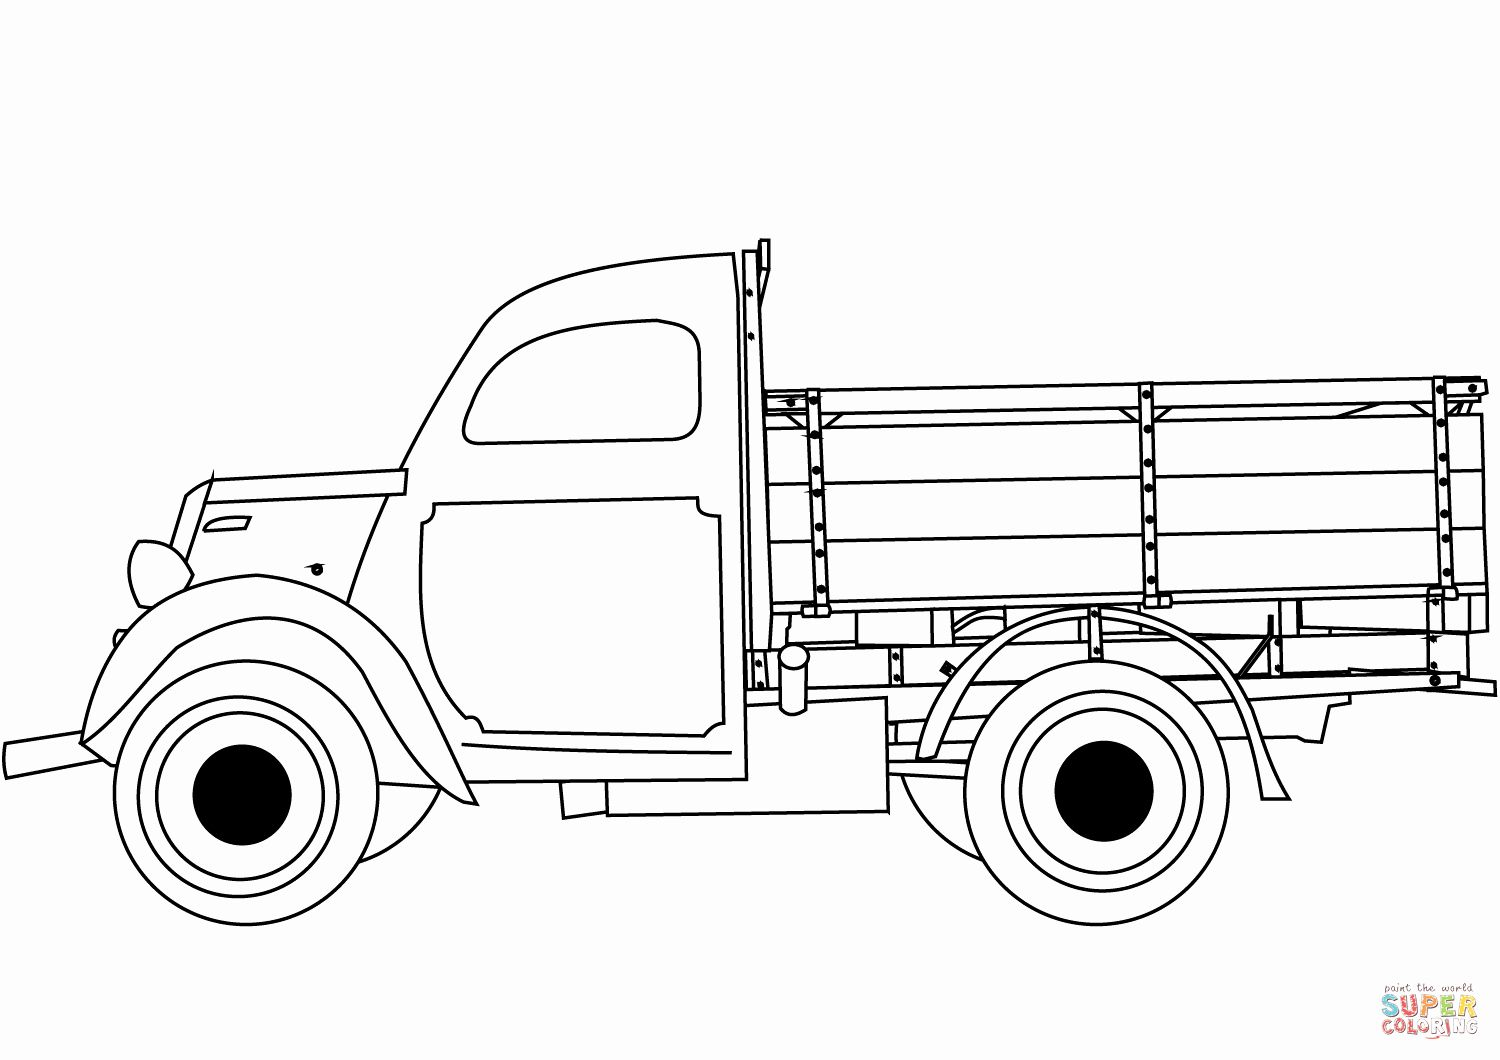 Fire Truck Coloring Pages Pdf Inspirational Coloring Ideas Free Printable Ford Truck Colo Truck Coloring Pages Monster Truck Coloring Pages Cars Coloring Pages